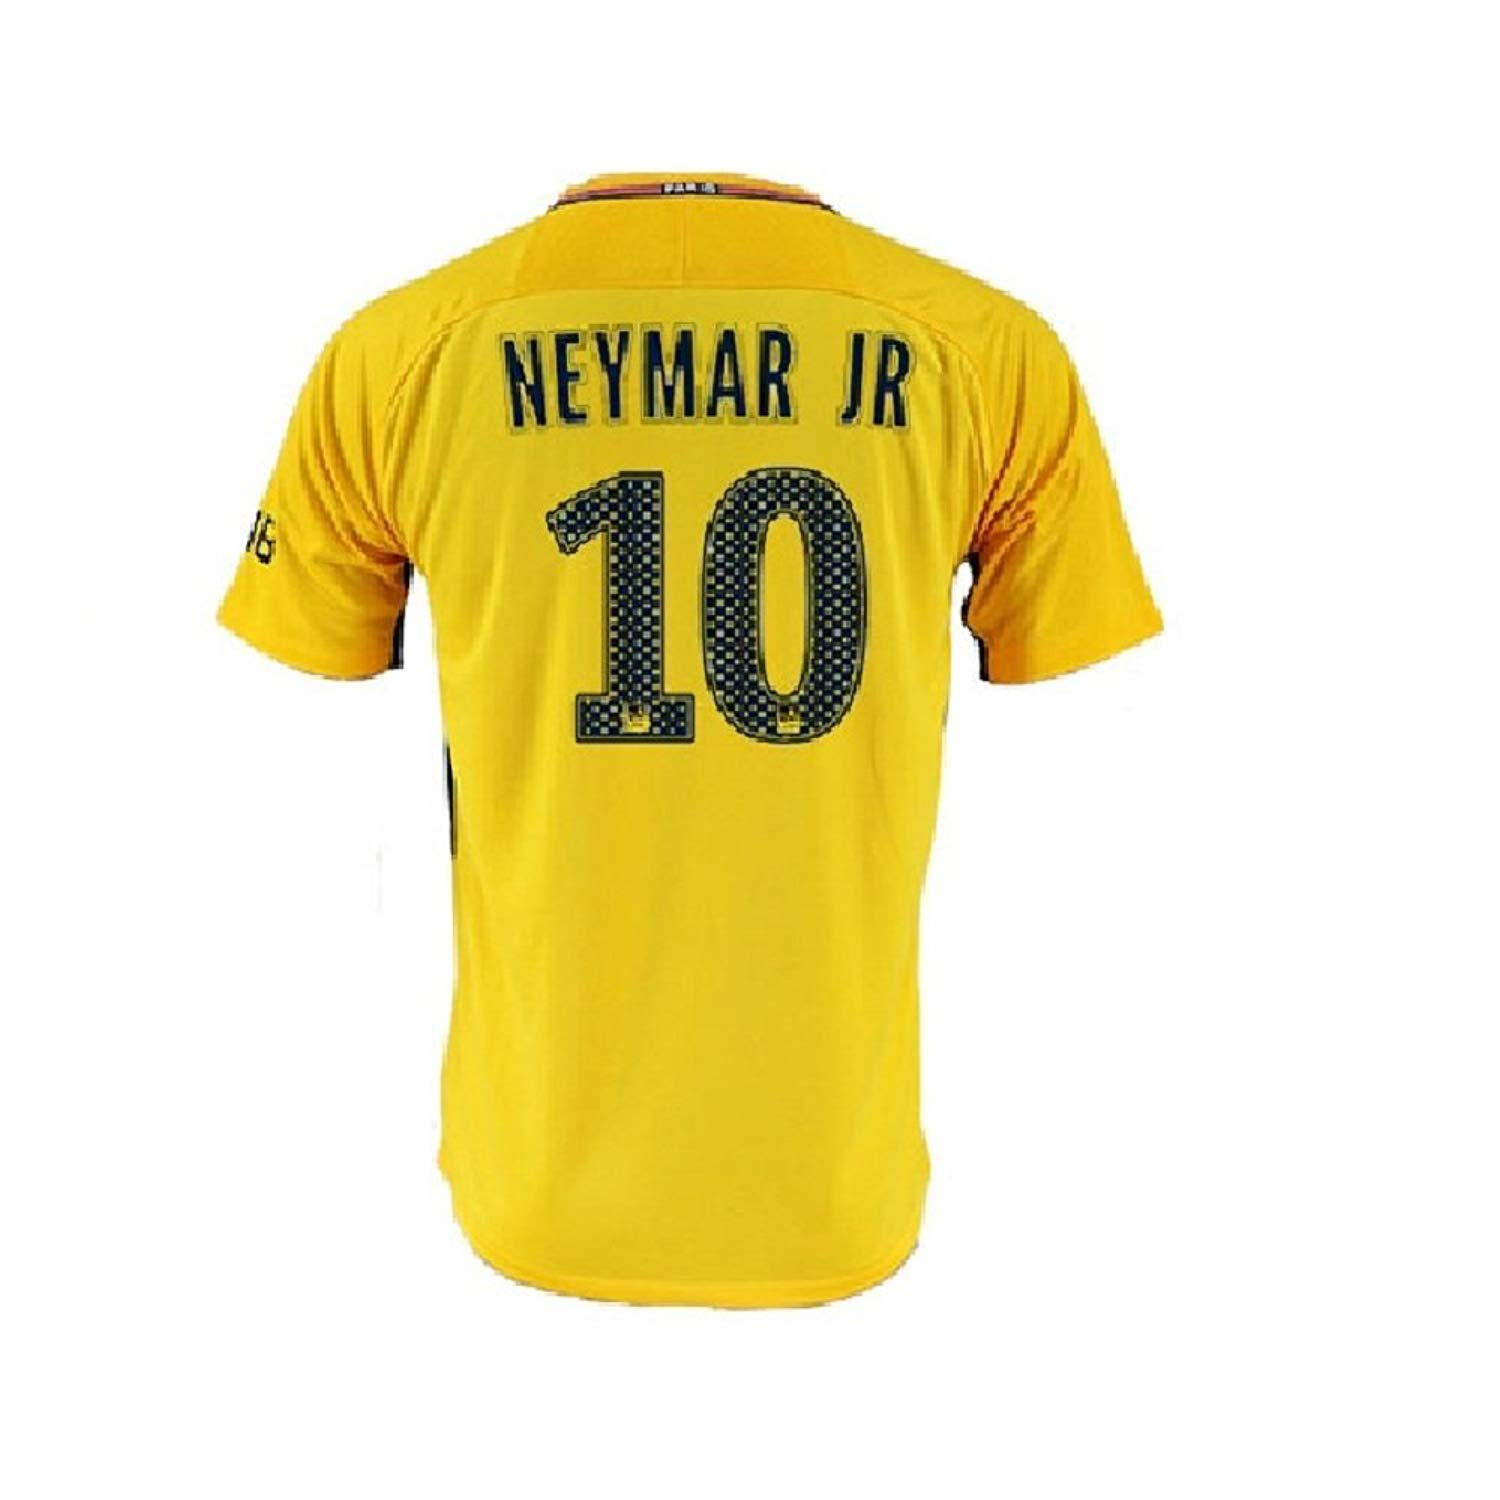 acd16e4d8b6 Men s Neymar Jerseys Paris Saint-Germain 10 Football Jersey Soccer Jersey  Yellow